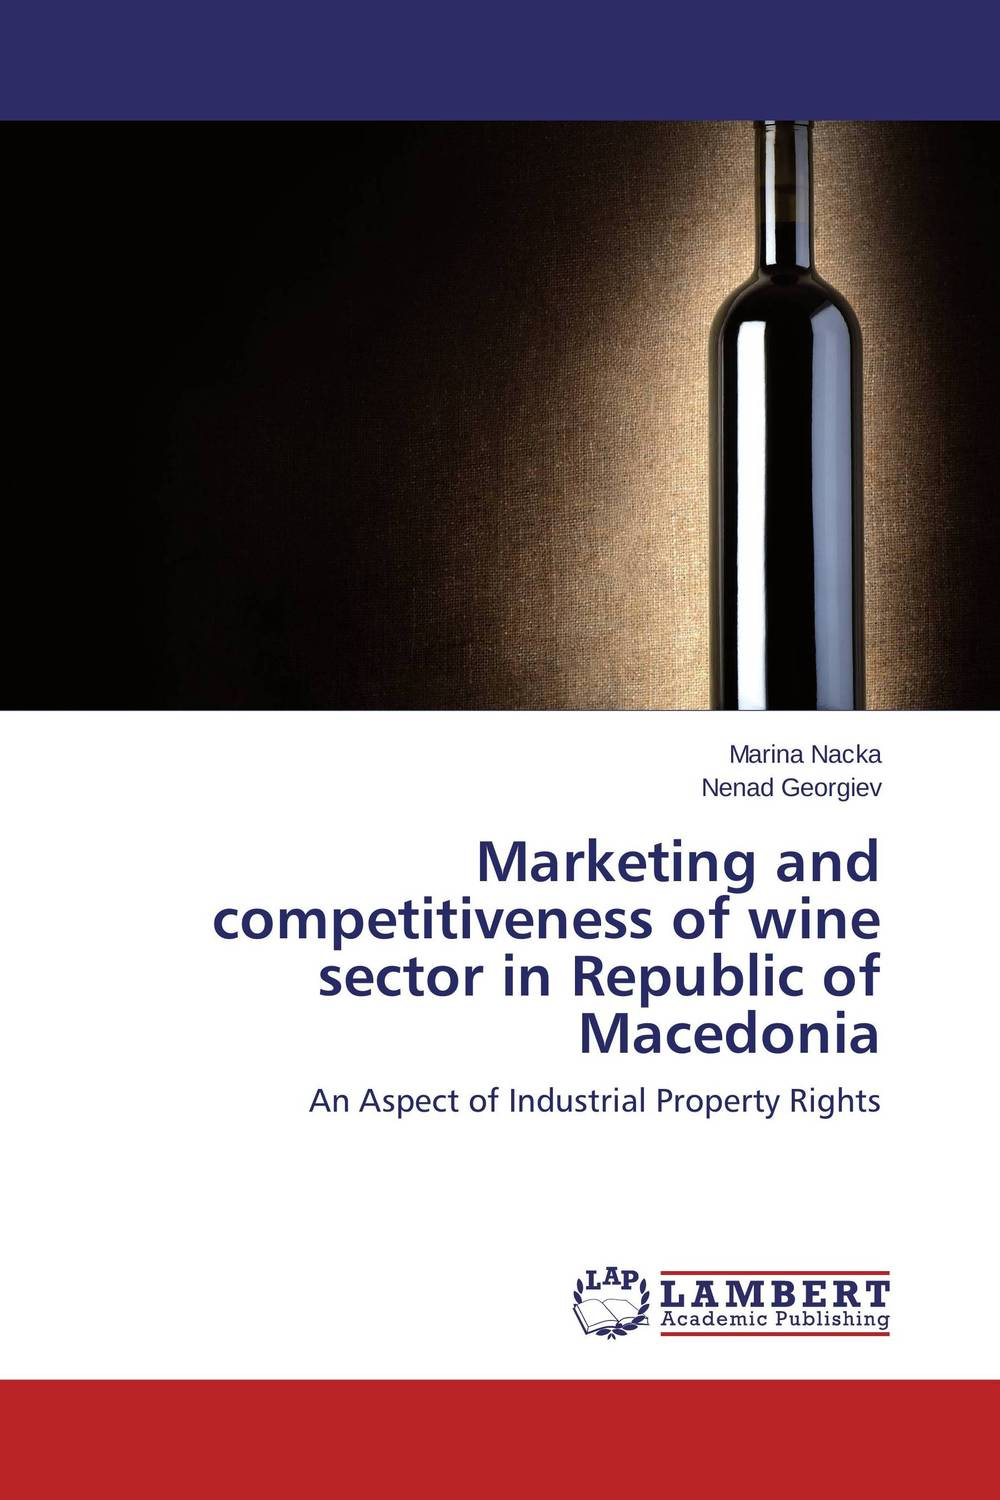 Marketing and competitiveness of wine sector in Republic of Macedonia marketing and competitiveness of wine sector in republic of macedonia